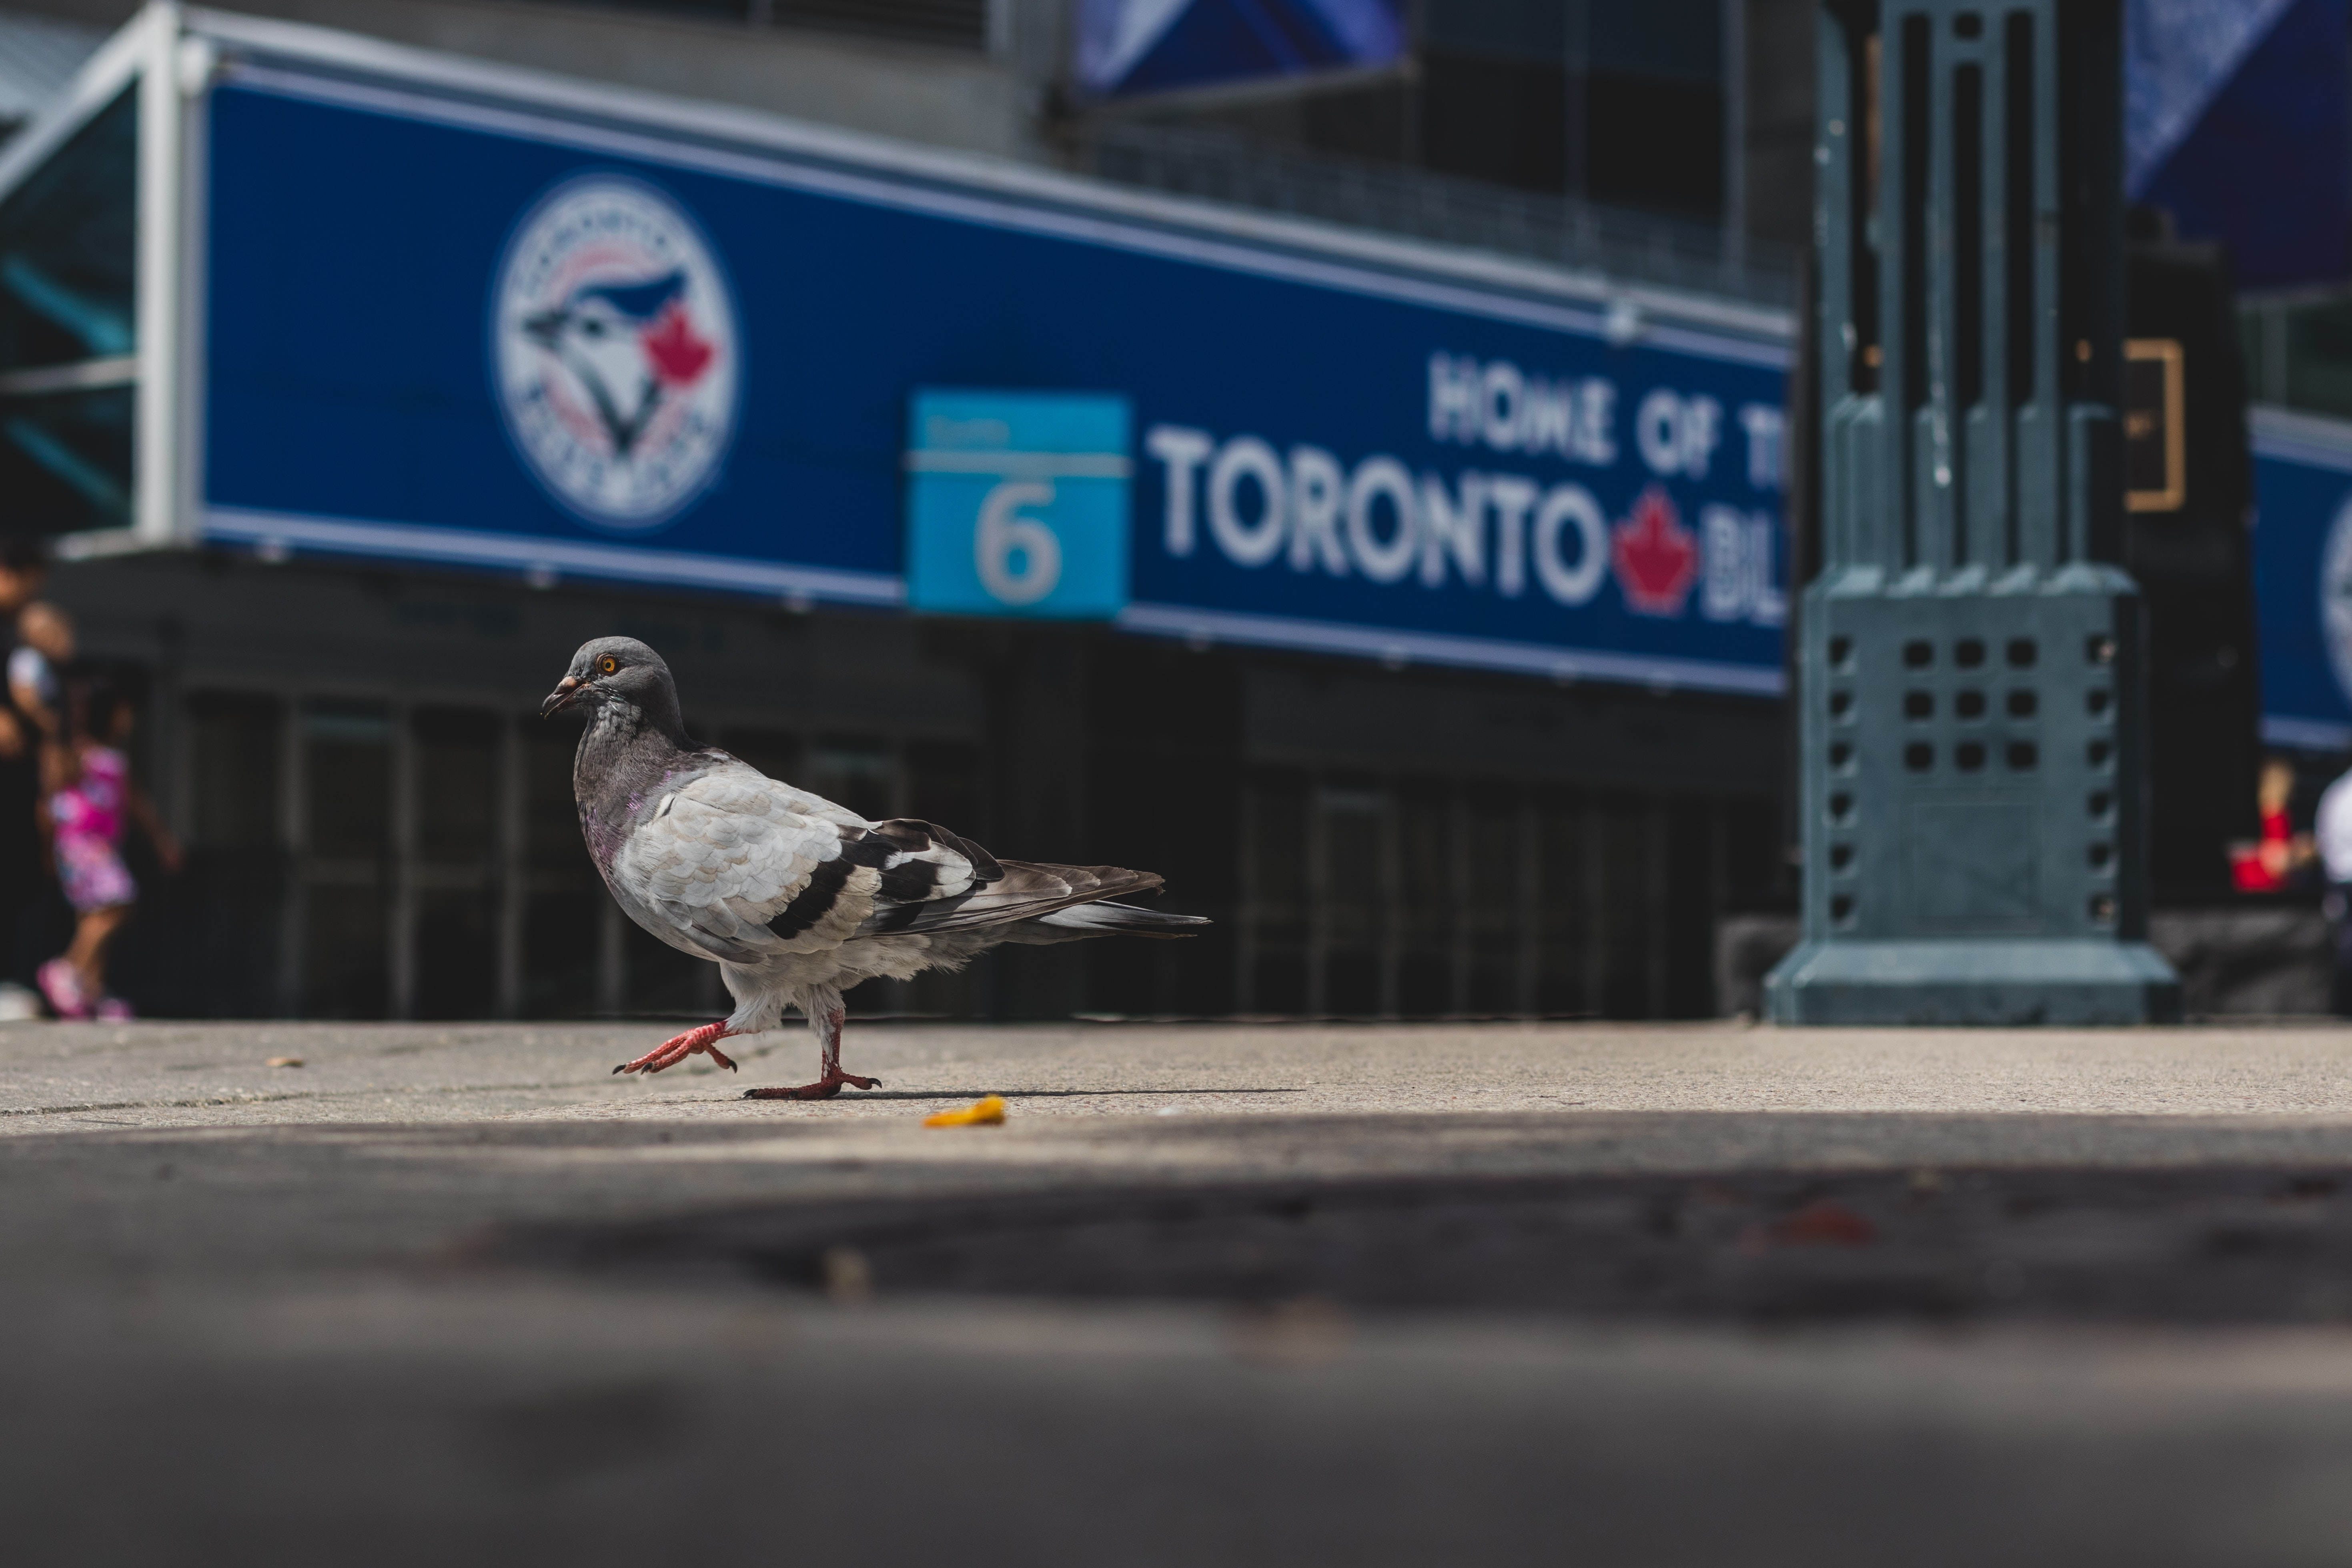 gray pigeon in selective focus photo during daytime